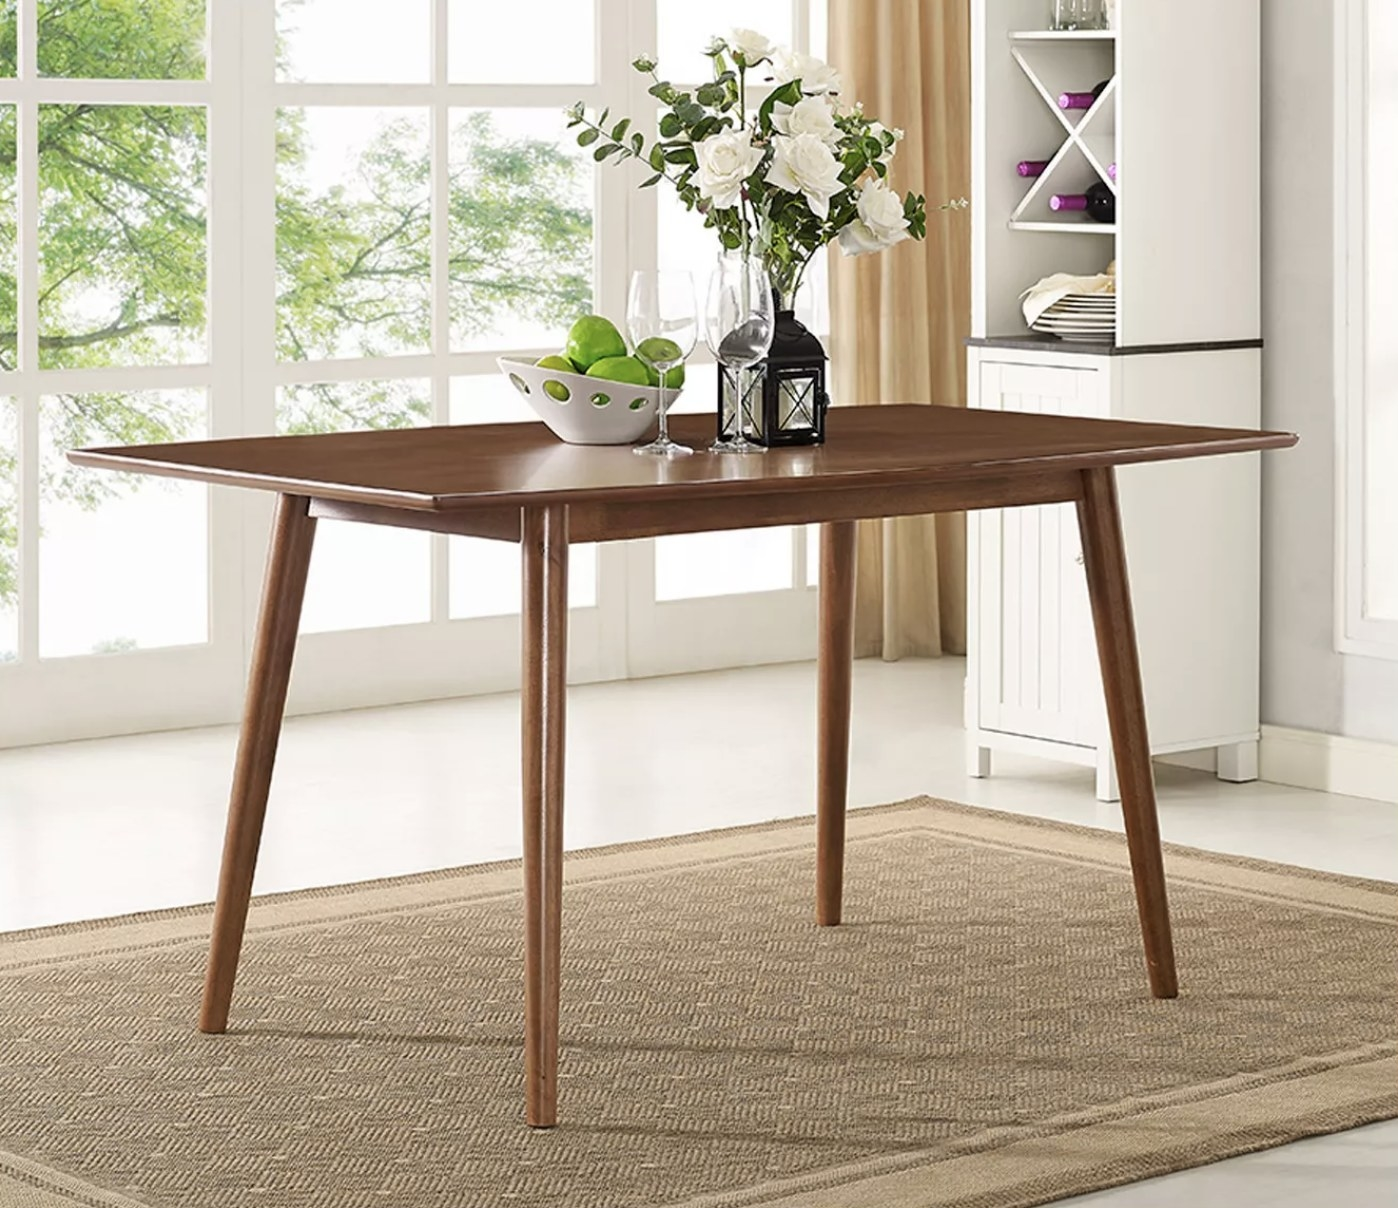 The light wood dining room table